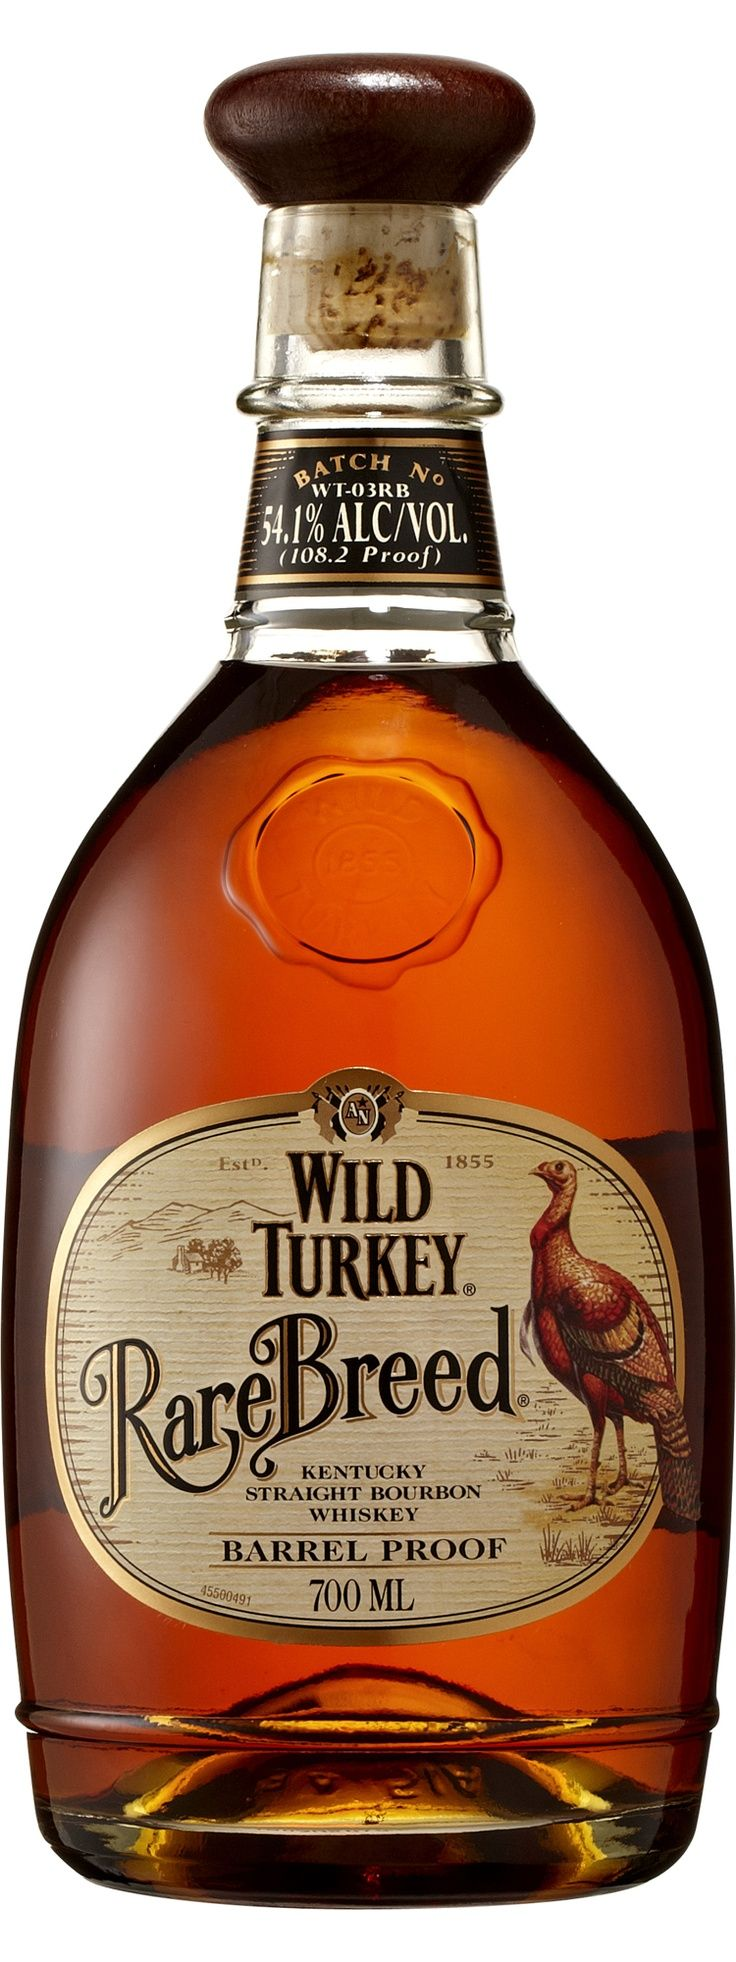 Wild Turkey Rare Breed Kentucky Straight Bourbon Whiskey | Dan Murphy's | Buy Wine, Champagne, Beer & Spirits Online